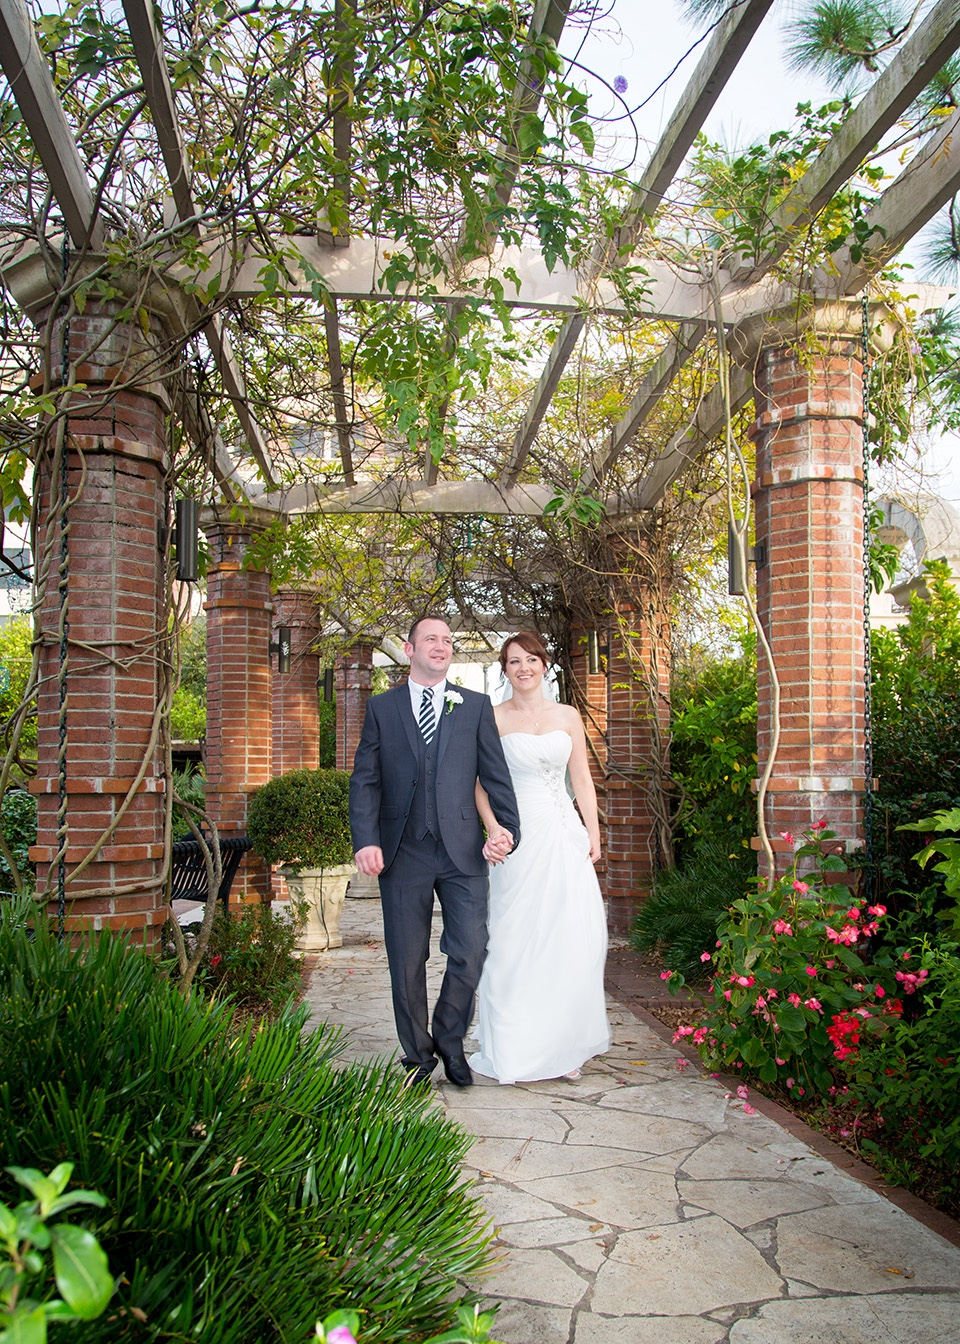 Kelly and Paul strolling through the gardens in Winter Park Florida